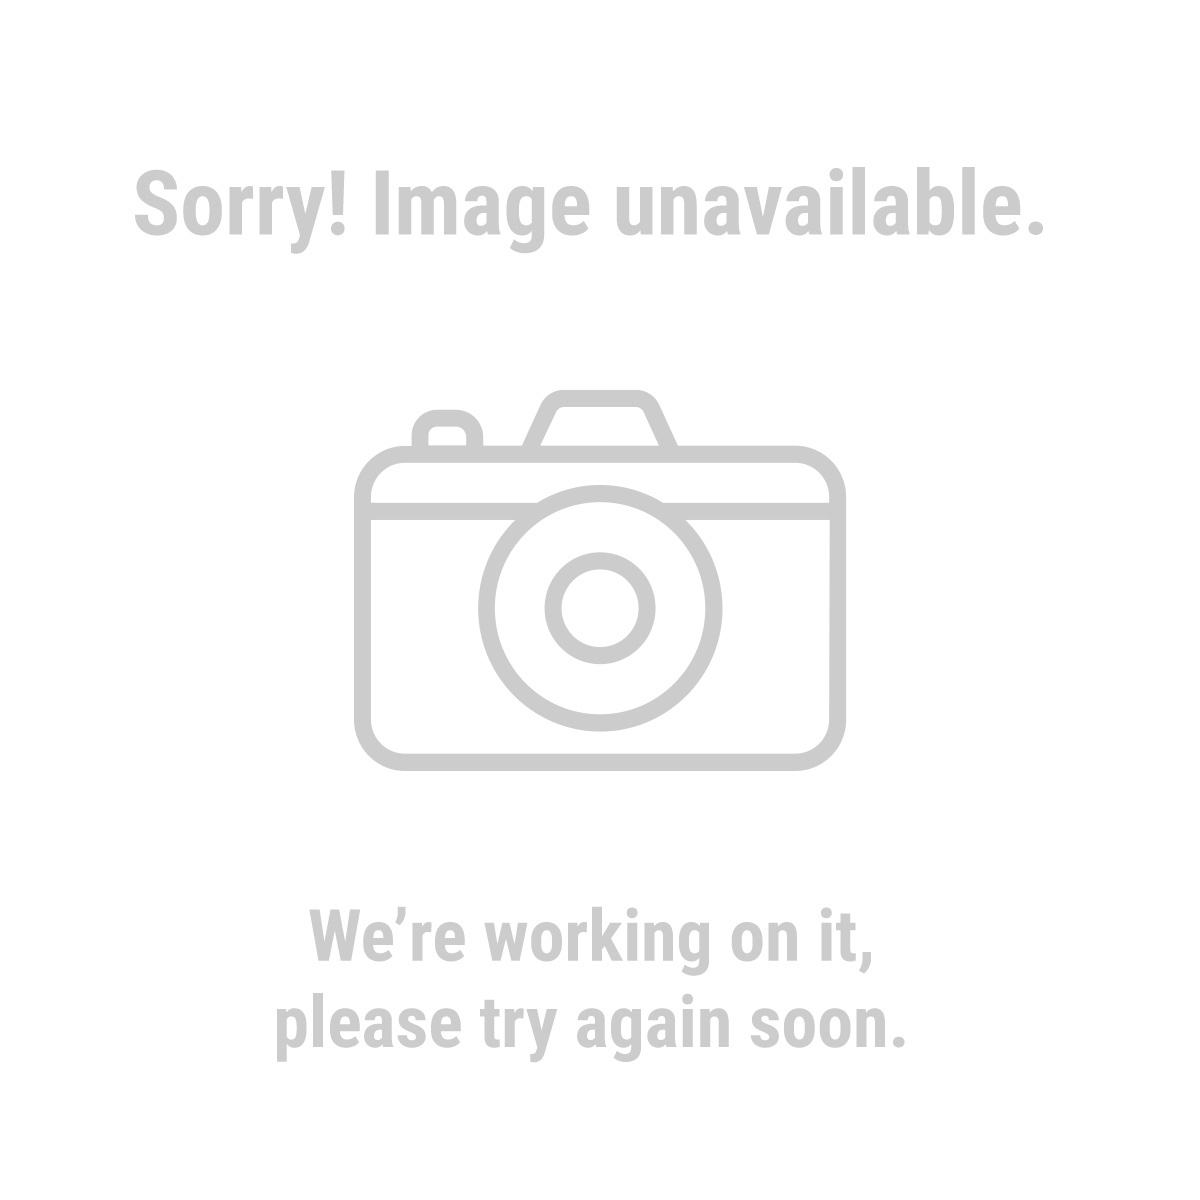 Pittsburgh® Automotive 62584 3 ton Steel Heavy Duty Floor Jack with Rapid Pump